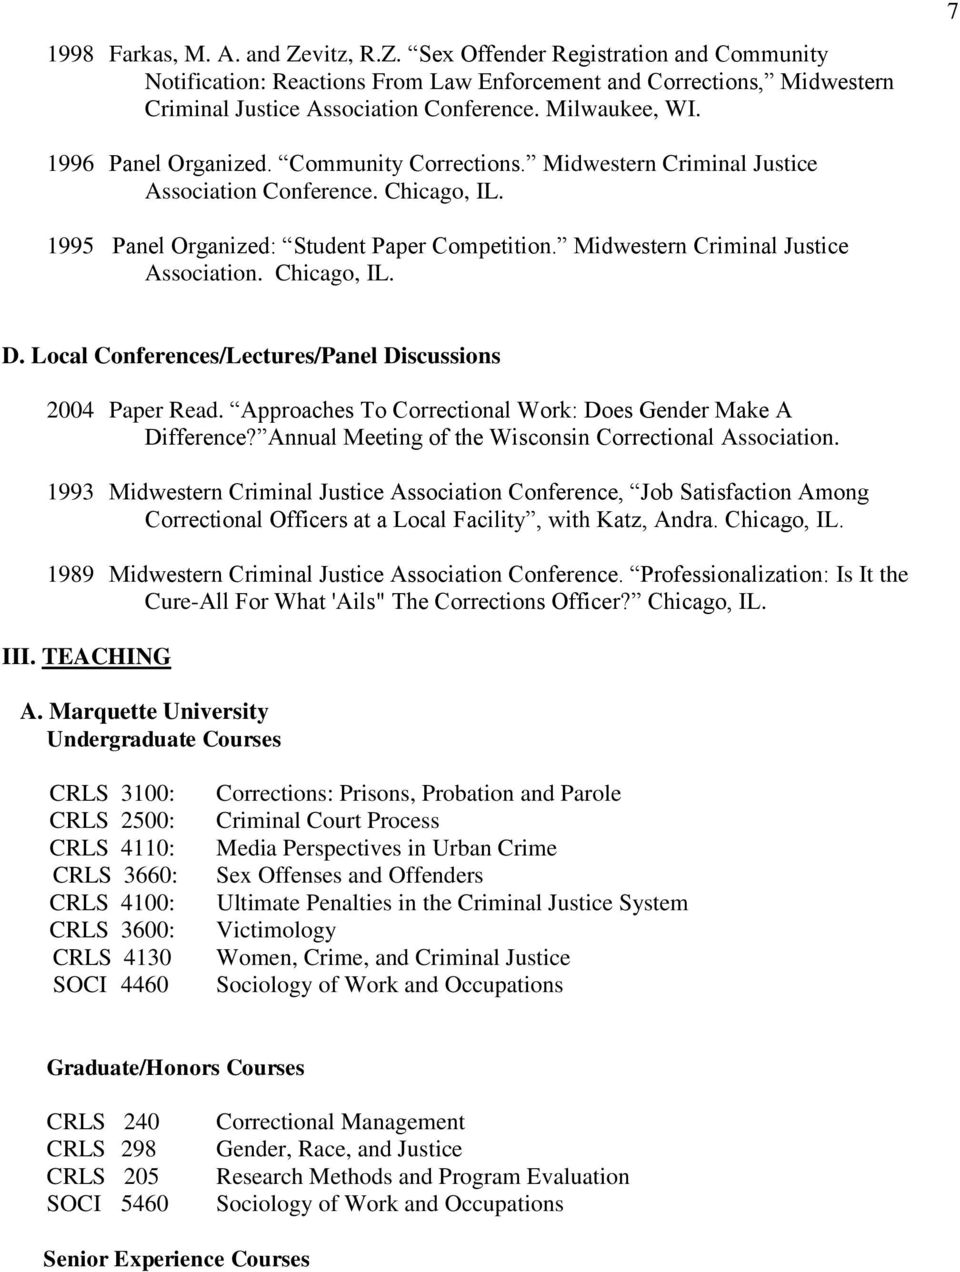 Midwestern Criminal Justice Association. Chicago, IL. D. Local Conferences/Lectures/Panel Discussions 2004 Paper Read. Approaches To Correctional Work: Does Gender Make A Difference?